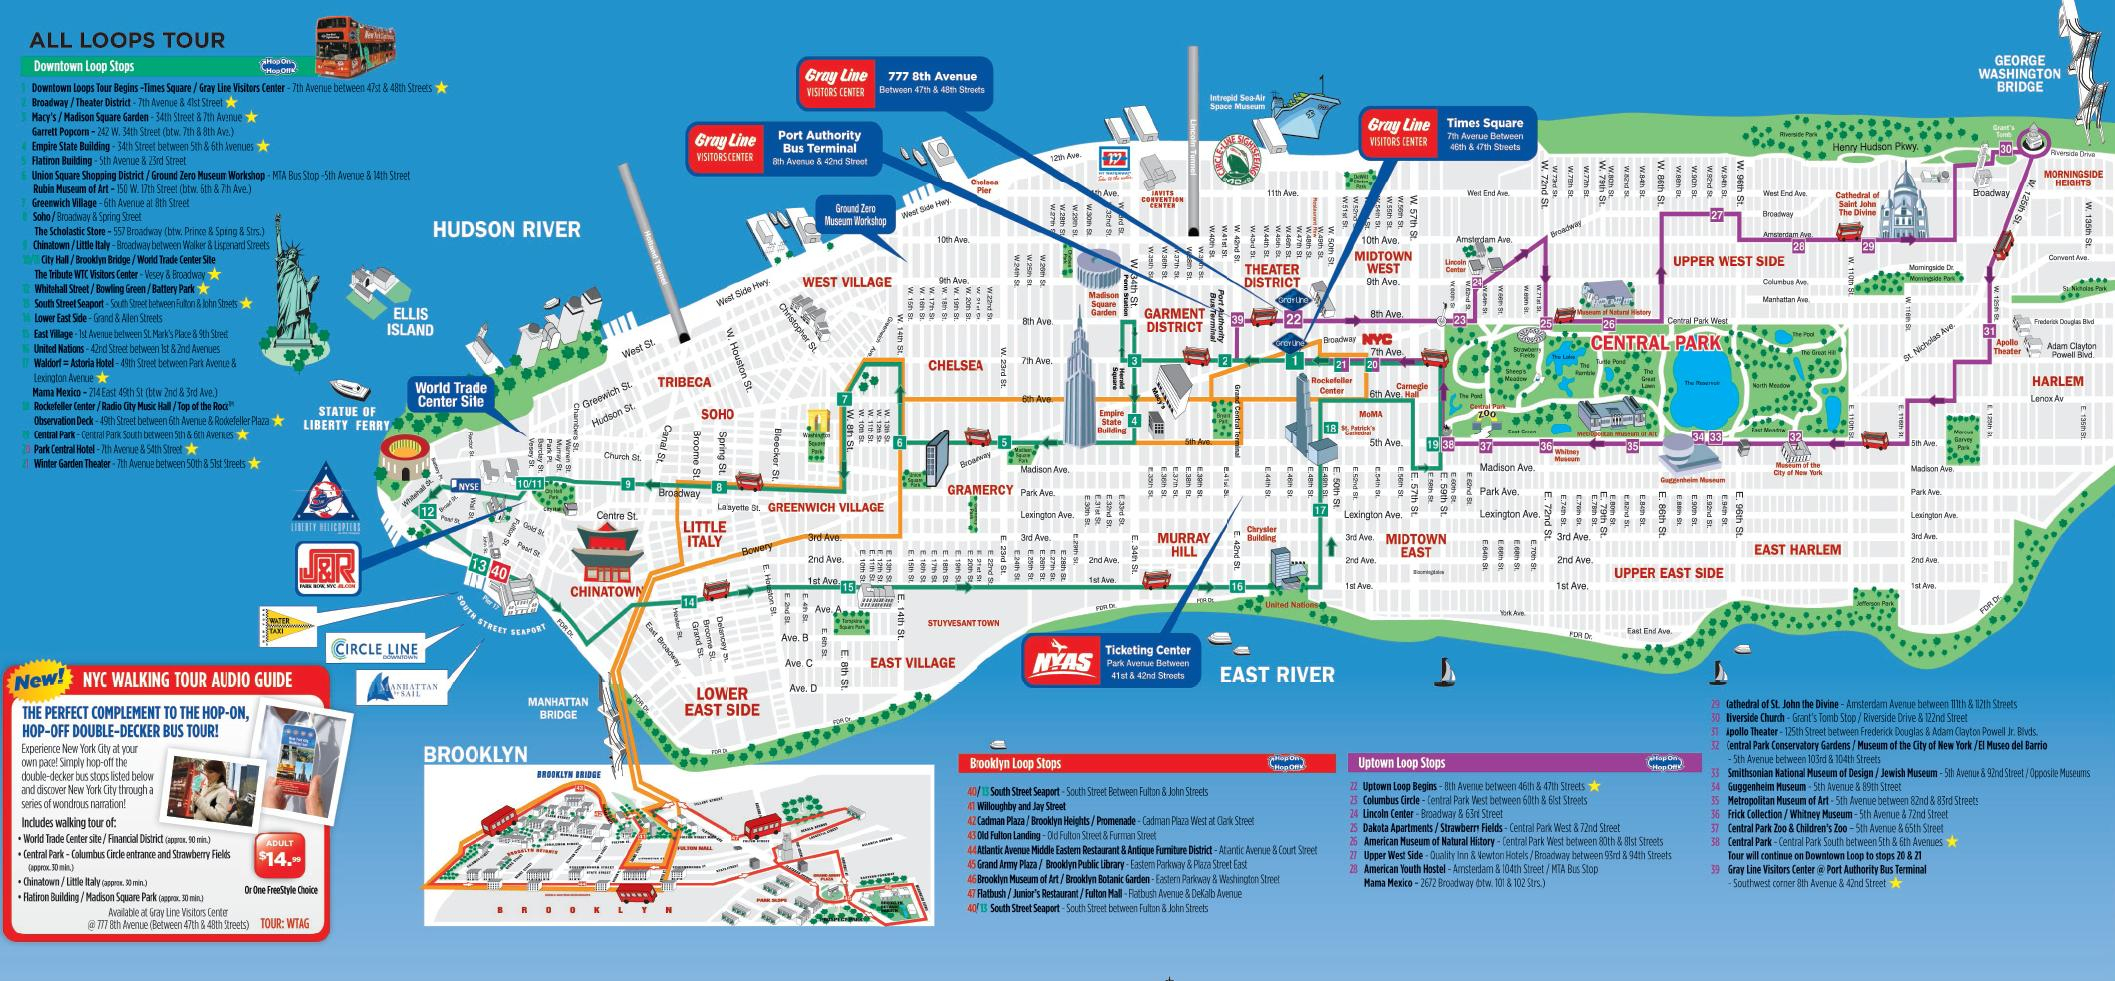 Map Of New York Attractions Printable Pics S New York Maps New York - Map Of Nyc Attractions Printable